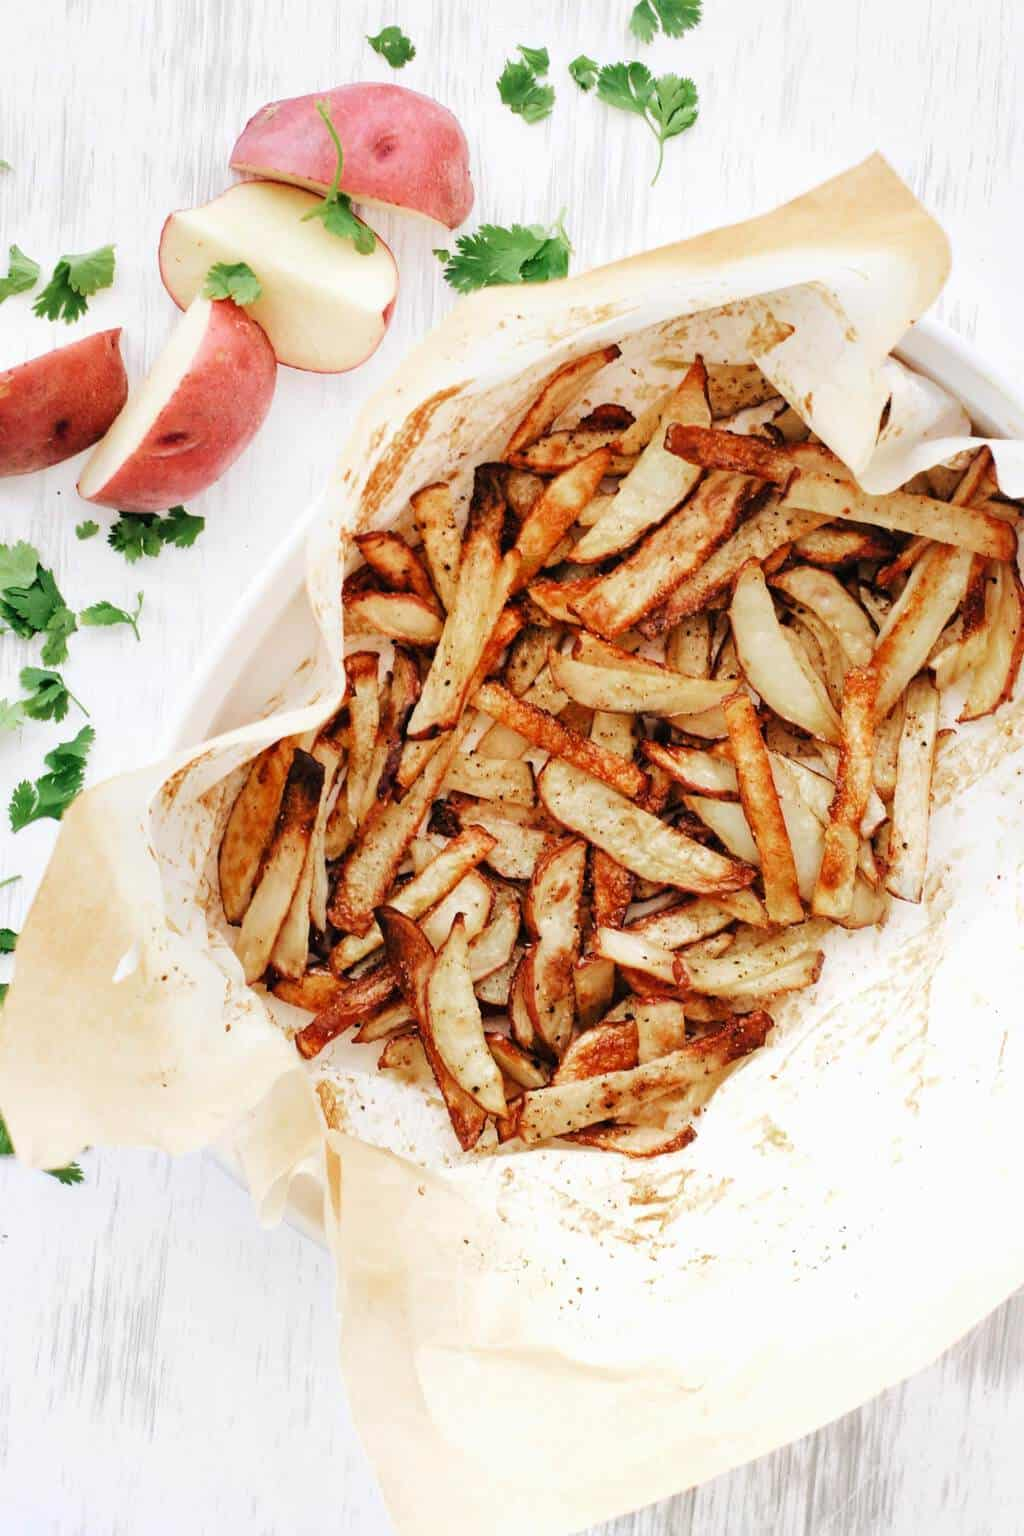 Crispy oven baked french fries with salt and vinegar